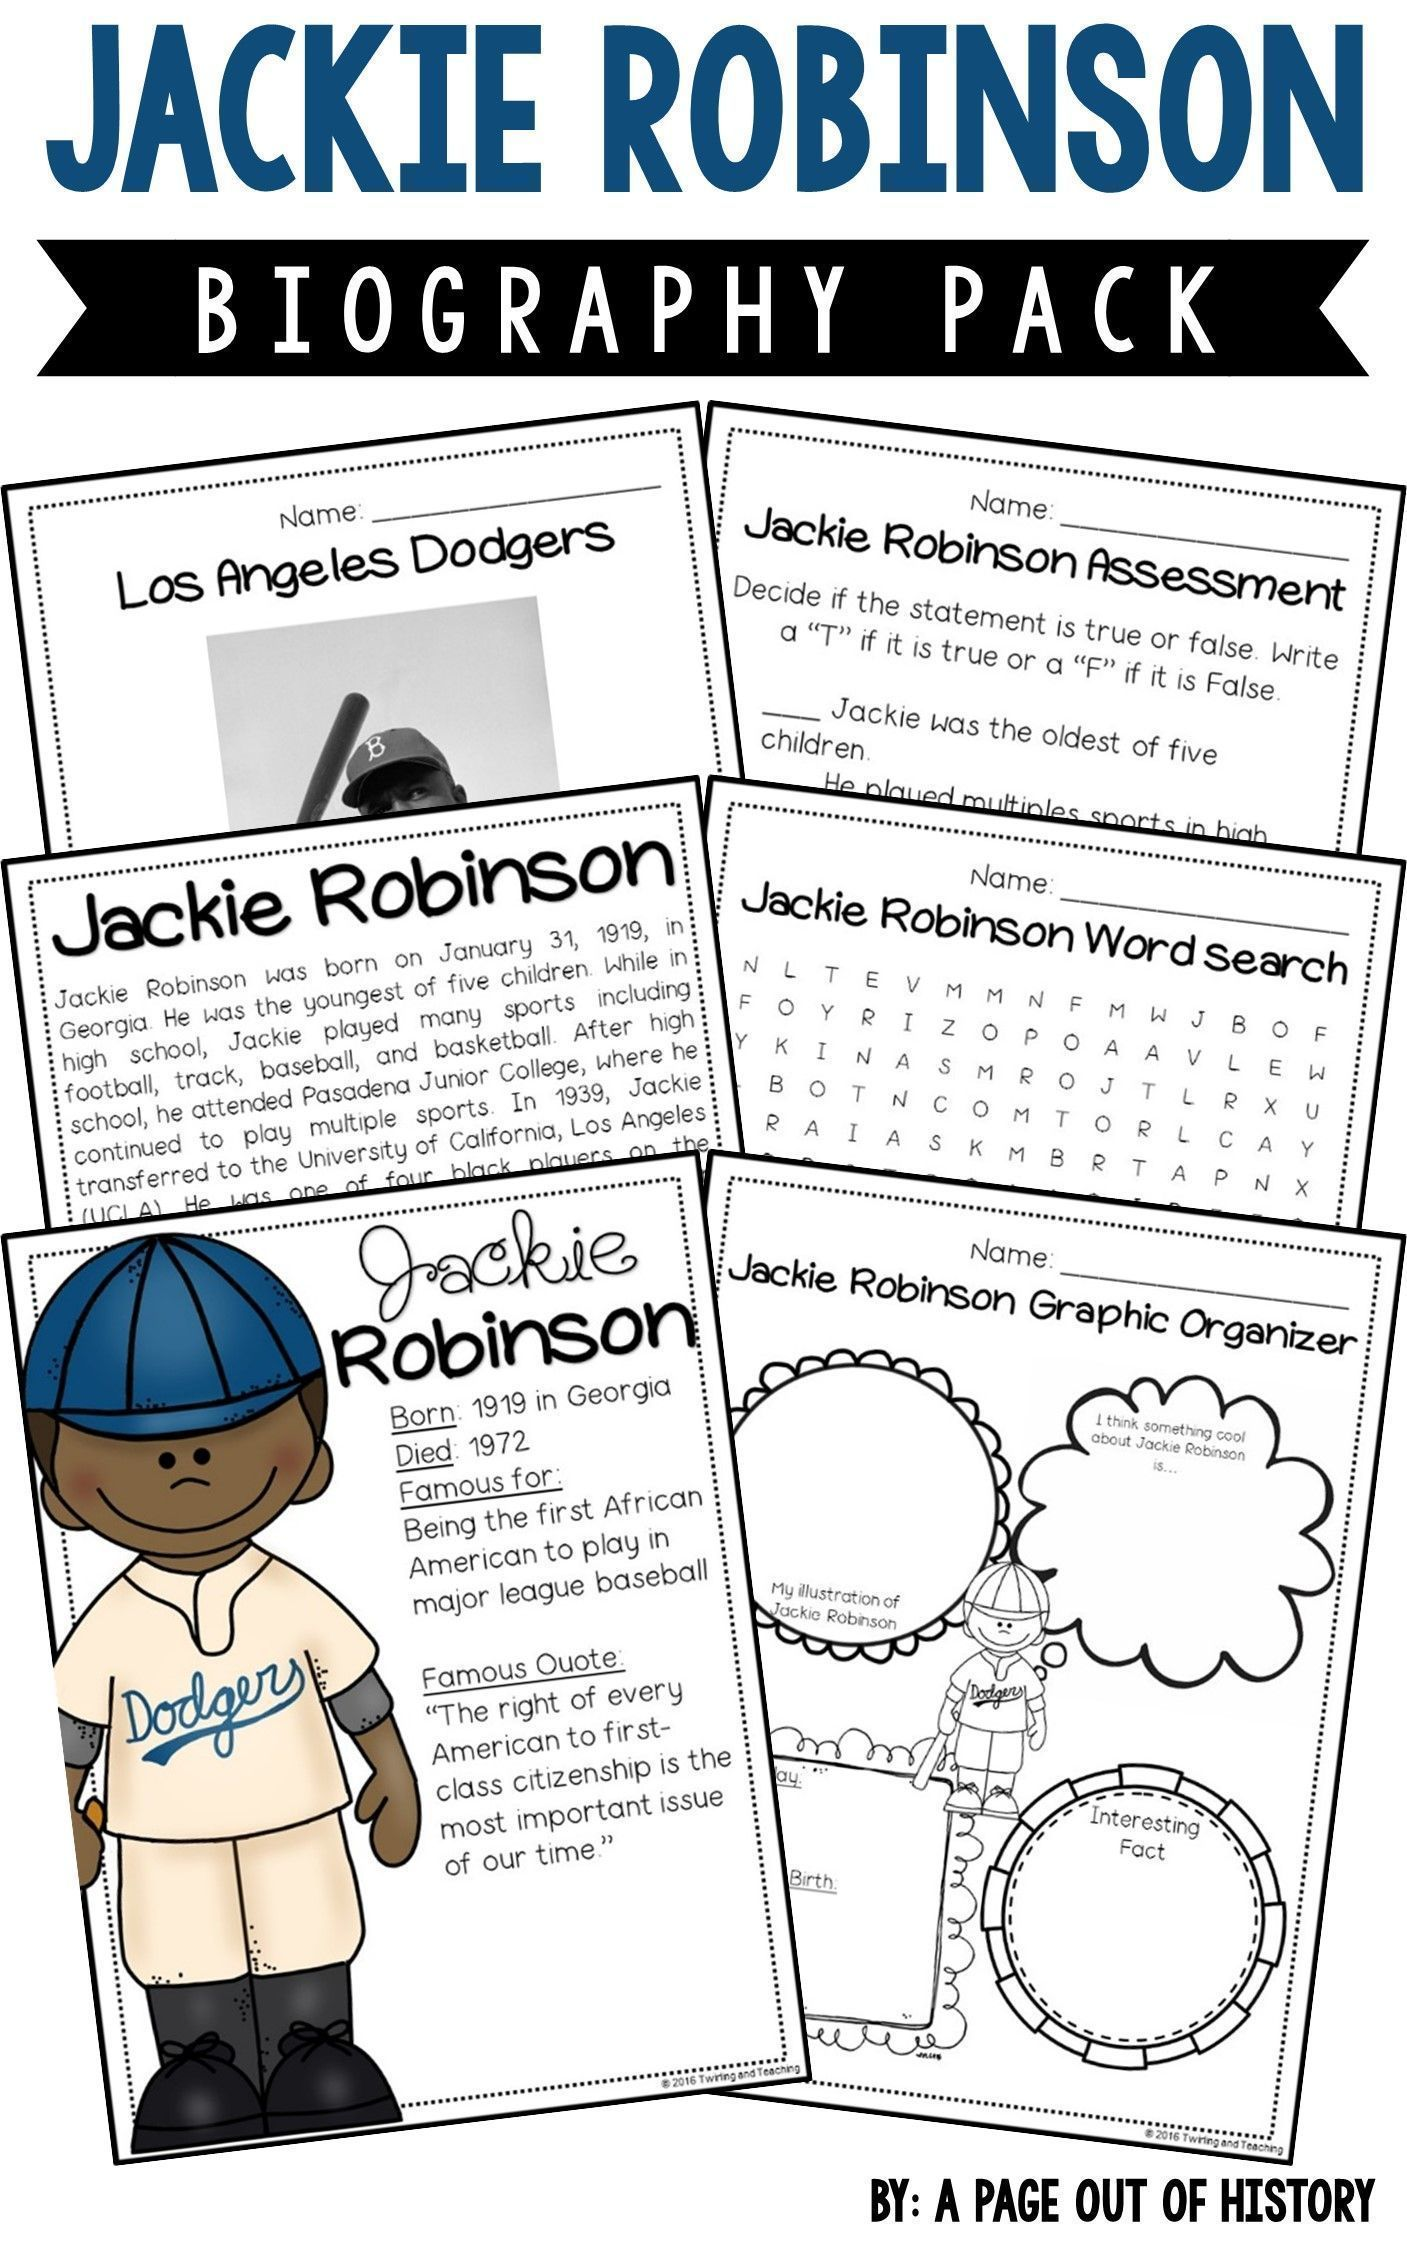 Jackie Robinson Biography Pack Black History Month